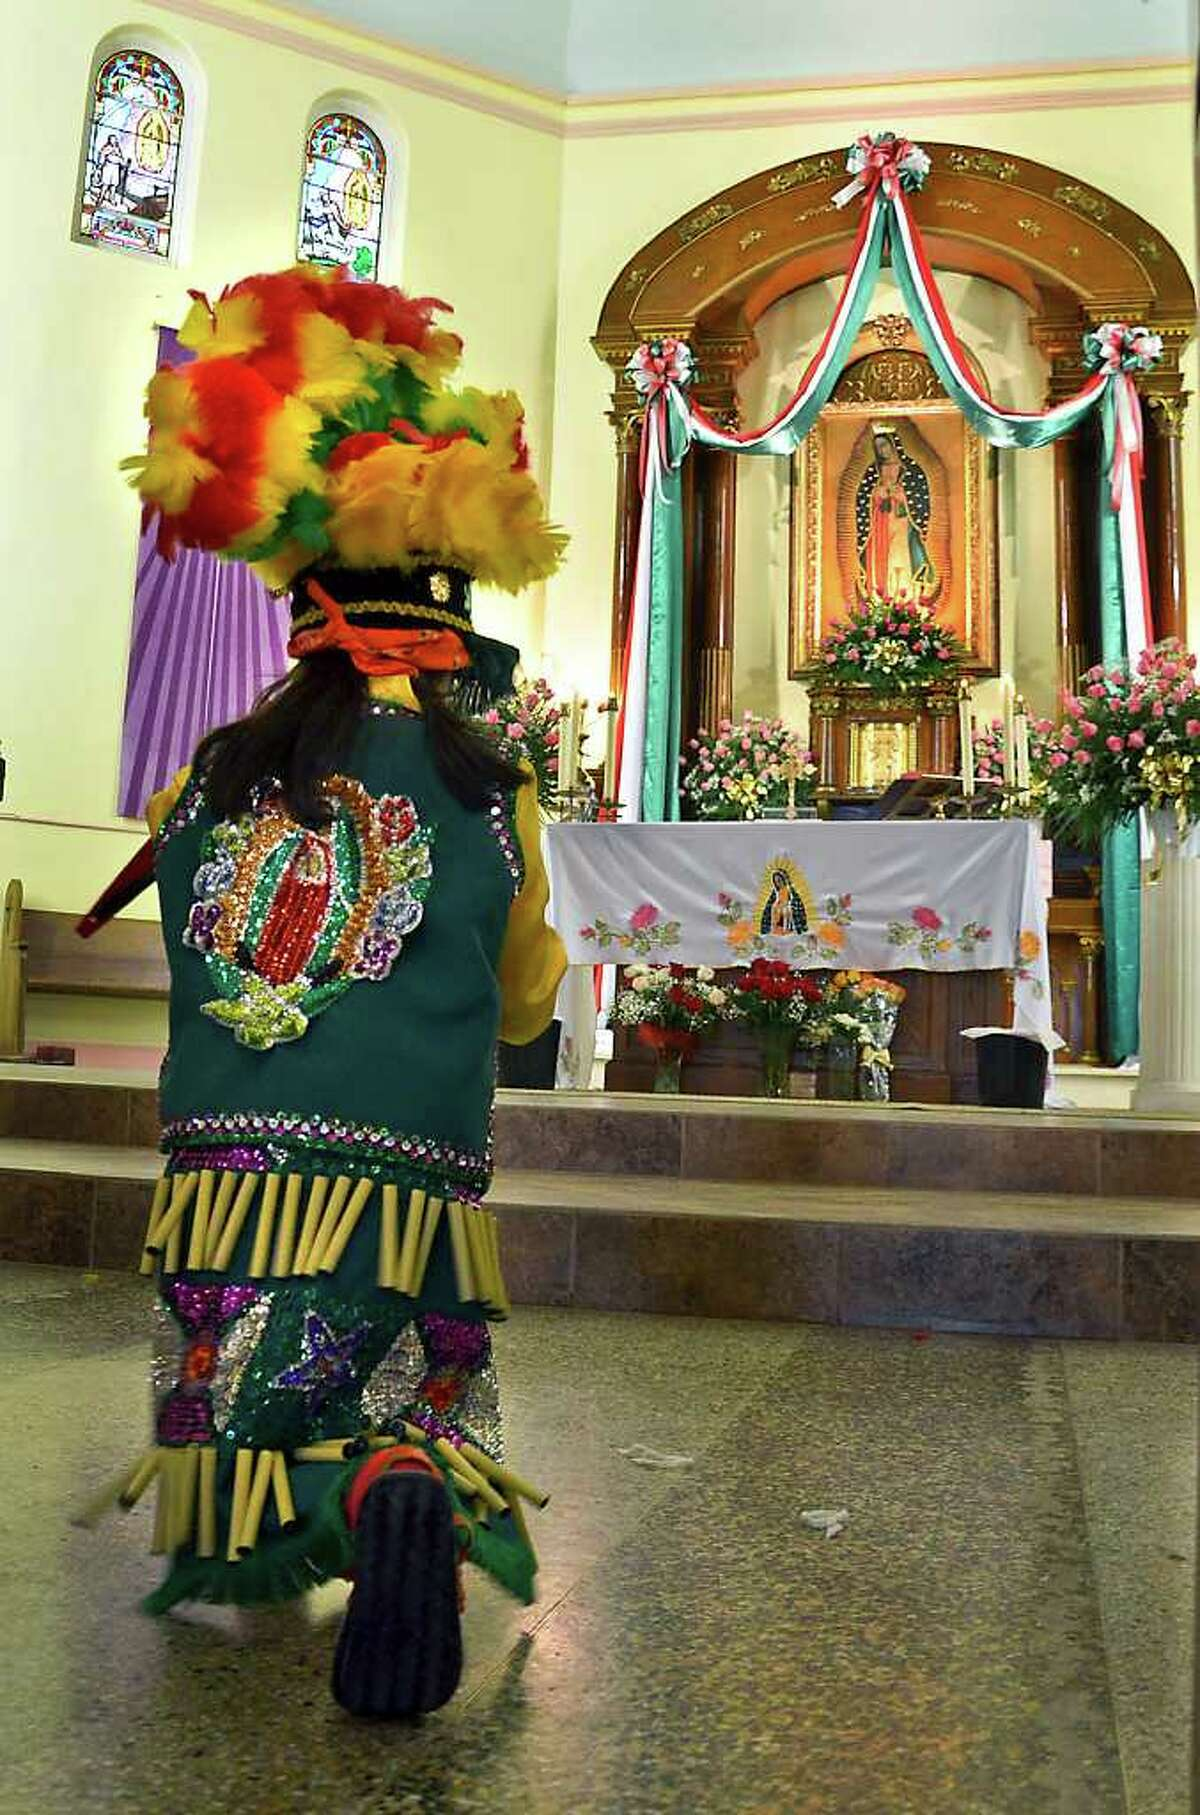 A member of the Matlachines from Our Lady of Guadalupe School performs in front of the altar during the Noon Mass at Our Lady of Guadalupe Catholic Church Monday. The Mass was celebrated to commemorate the 480th anniversary of the apparition by La Virgen to Juan Diego.